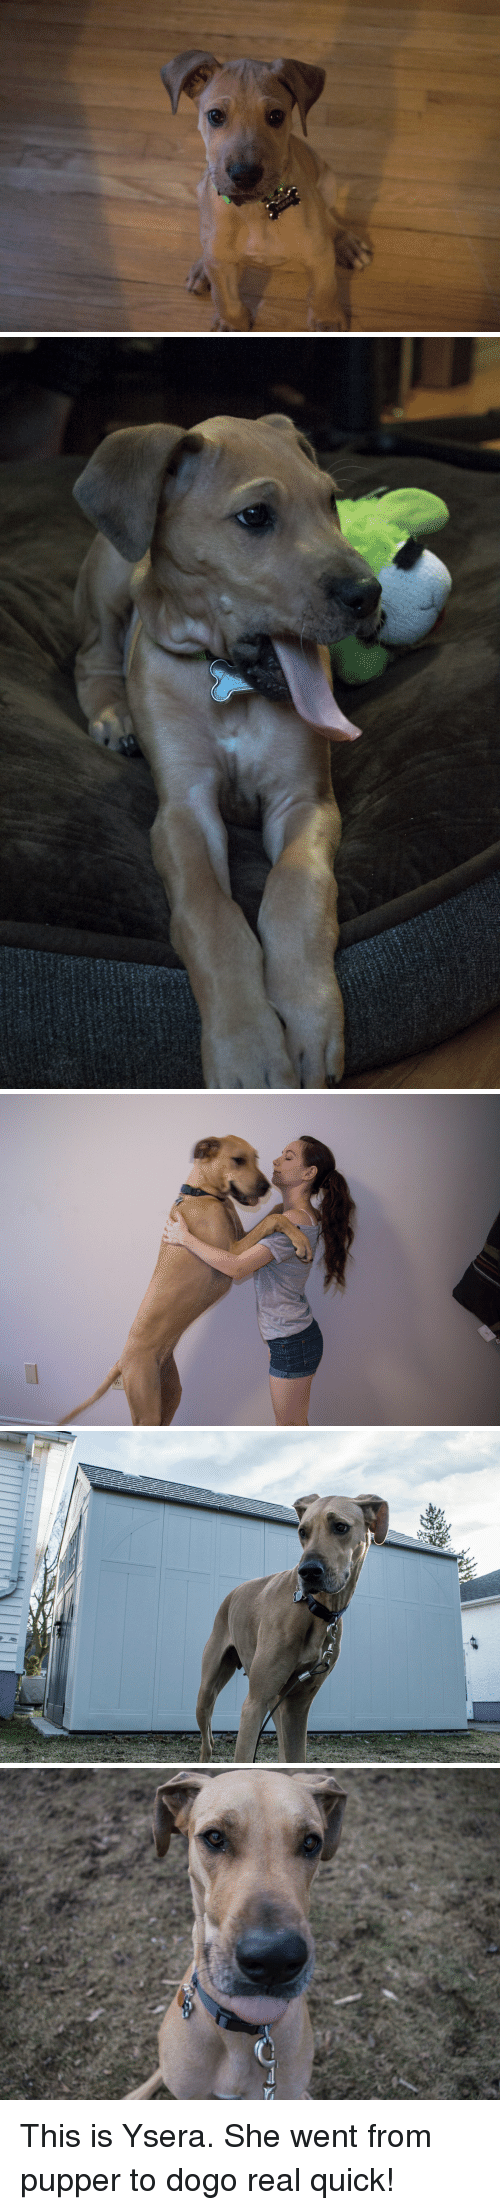 She, Real, and This: This is Ysera. She went from pupper to dogo real quick!